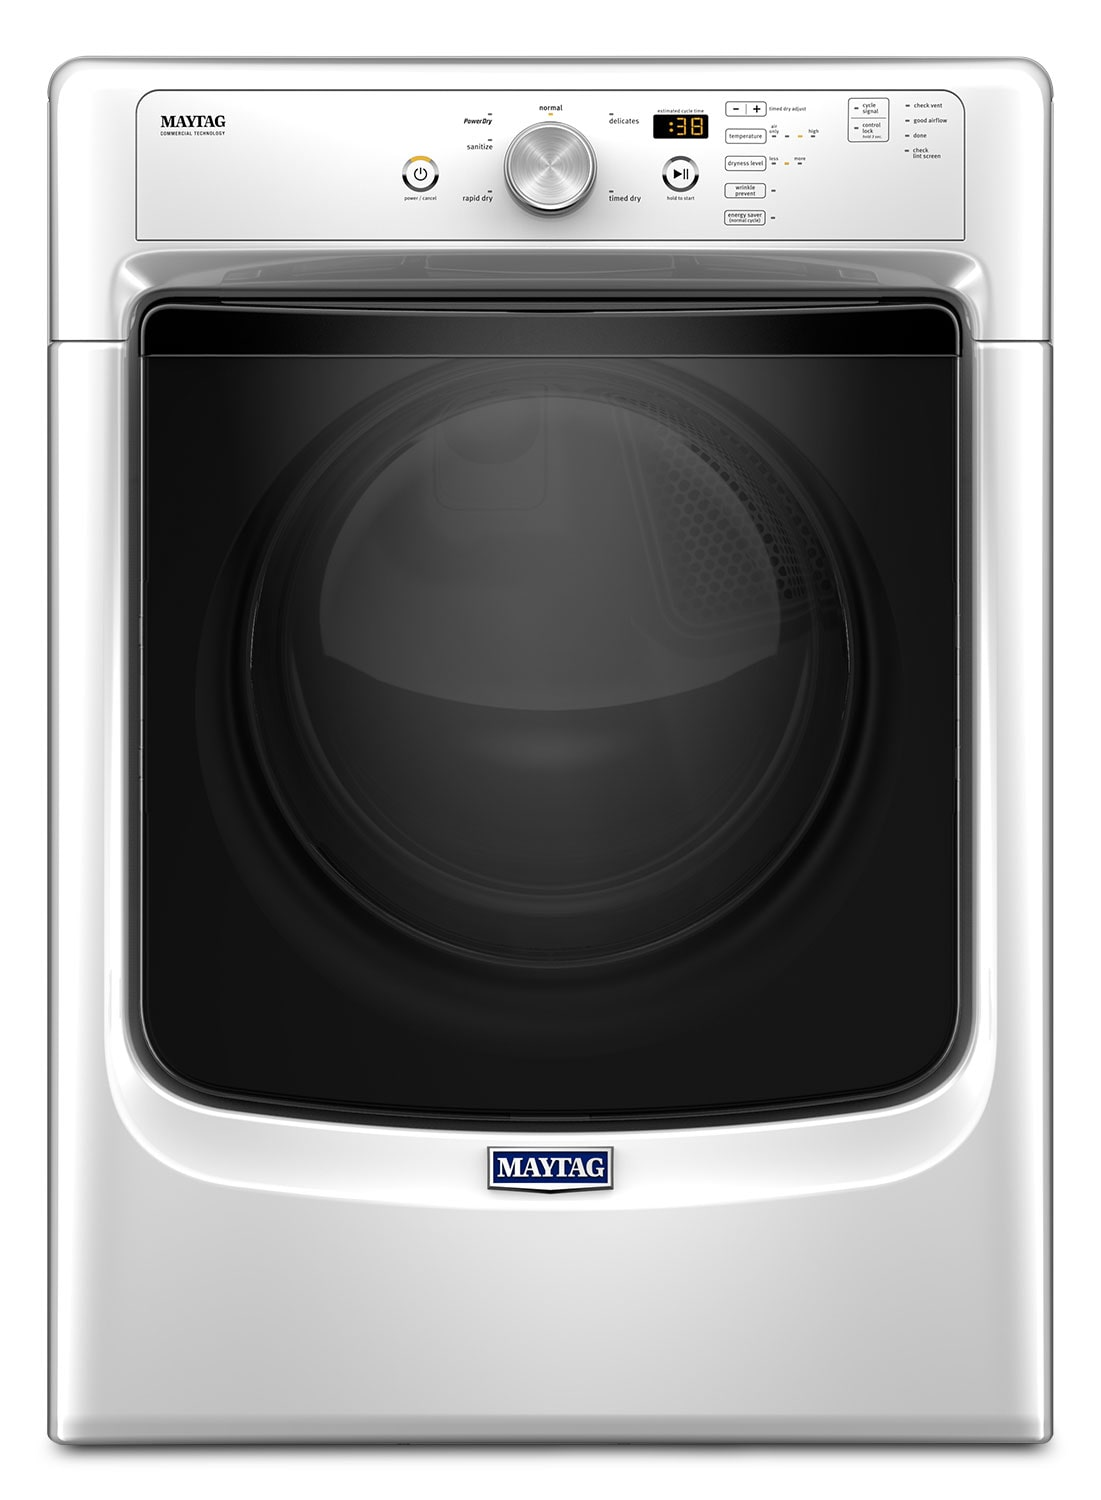 Maytag White Gas Dryer (7.4 Cu. Ft.) - MGD3500FW